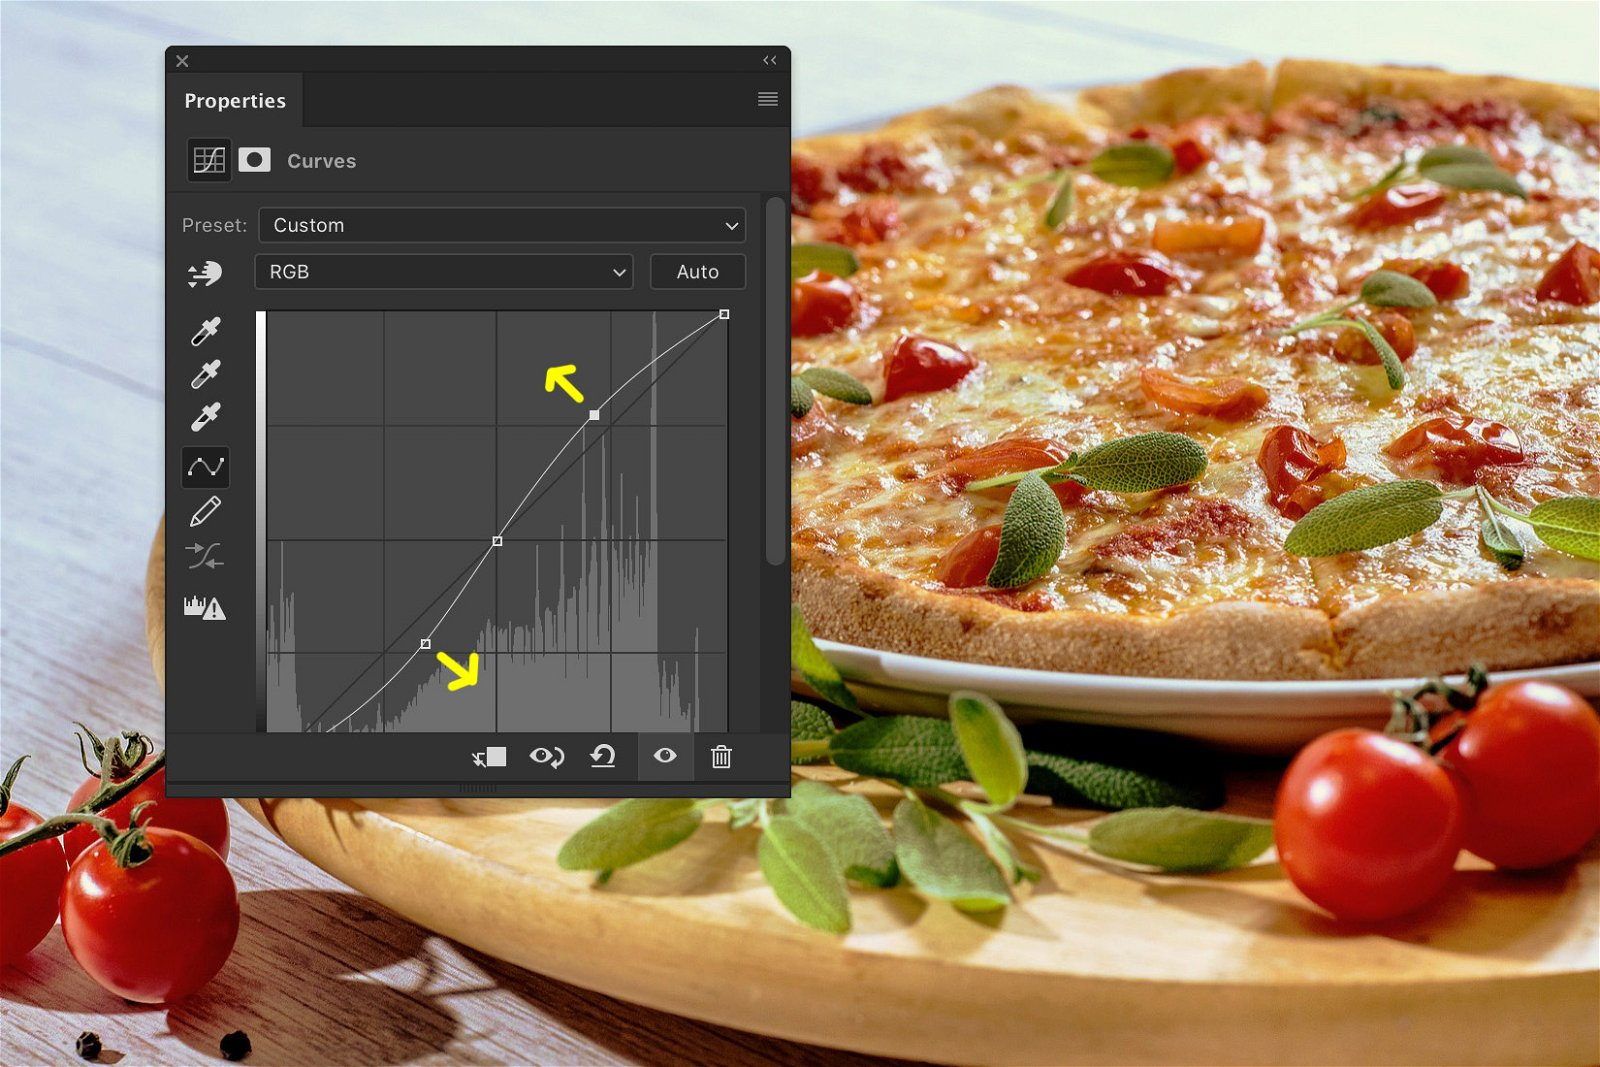 A screenshot showing how to edit food photography in Photoshop - contrast